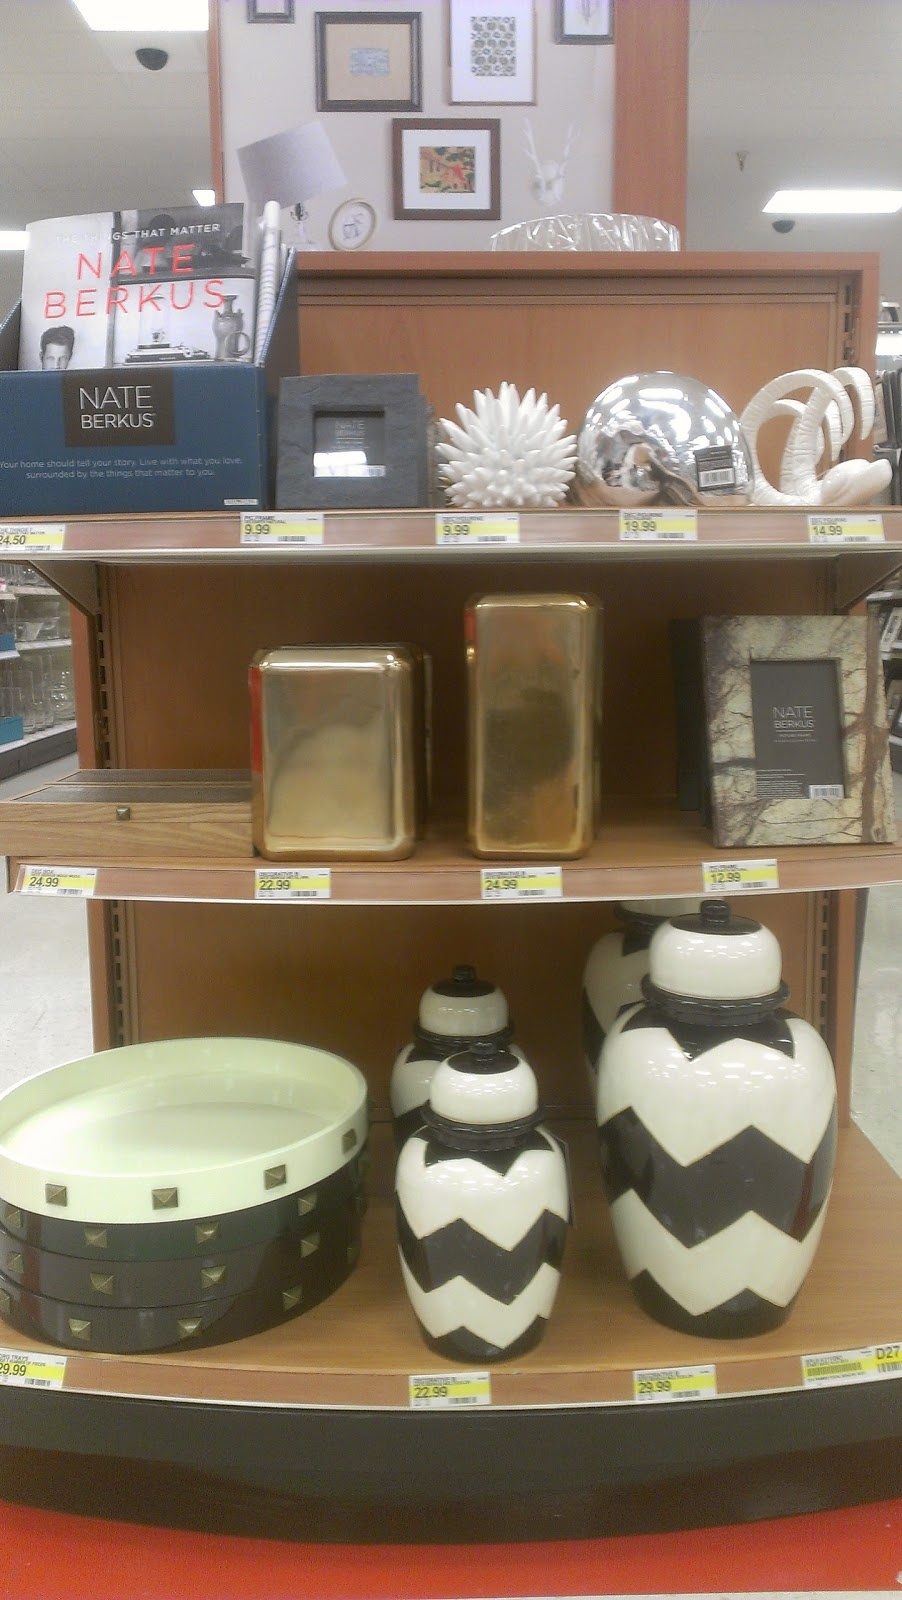 Stuck On Hue Fun Finds The Nate Berkus Collection At Target